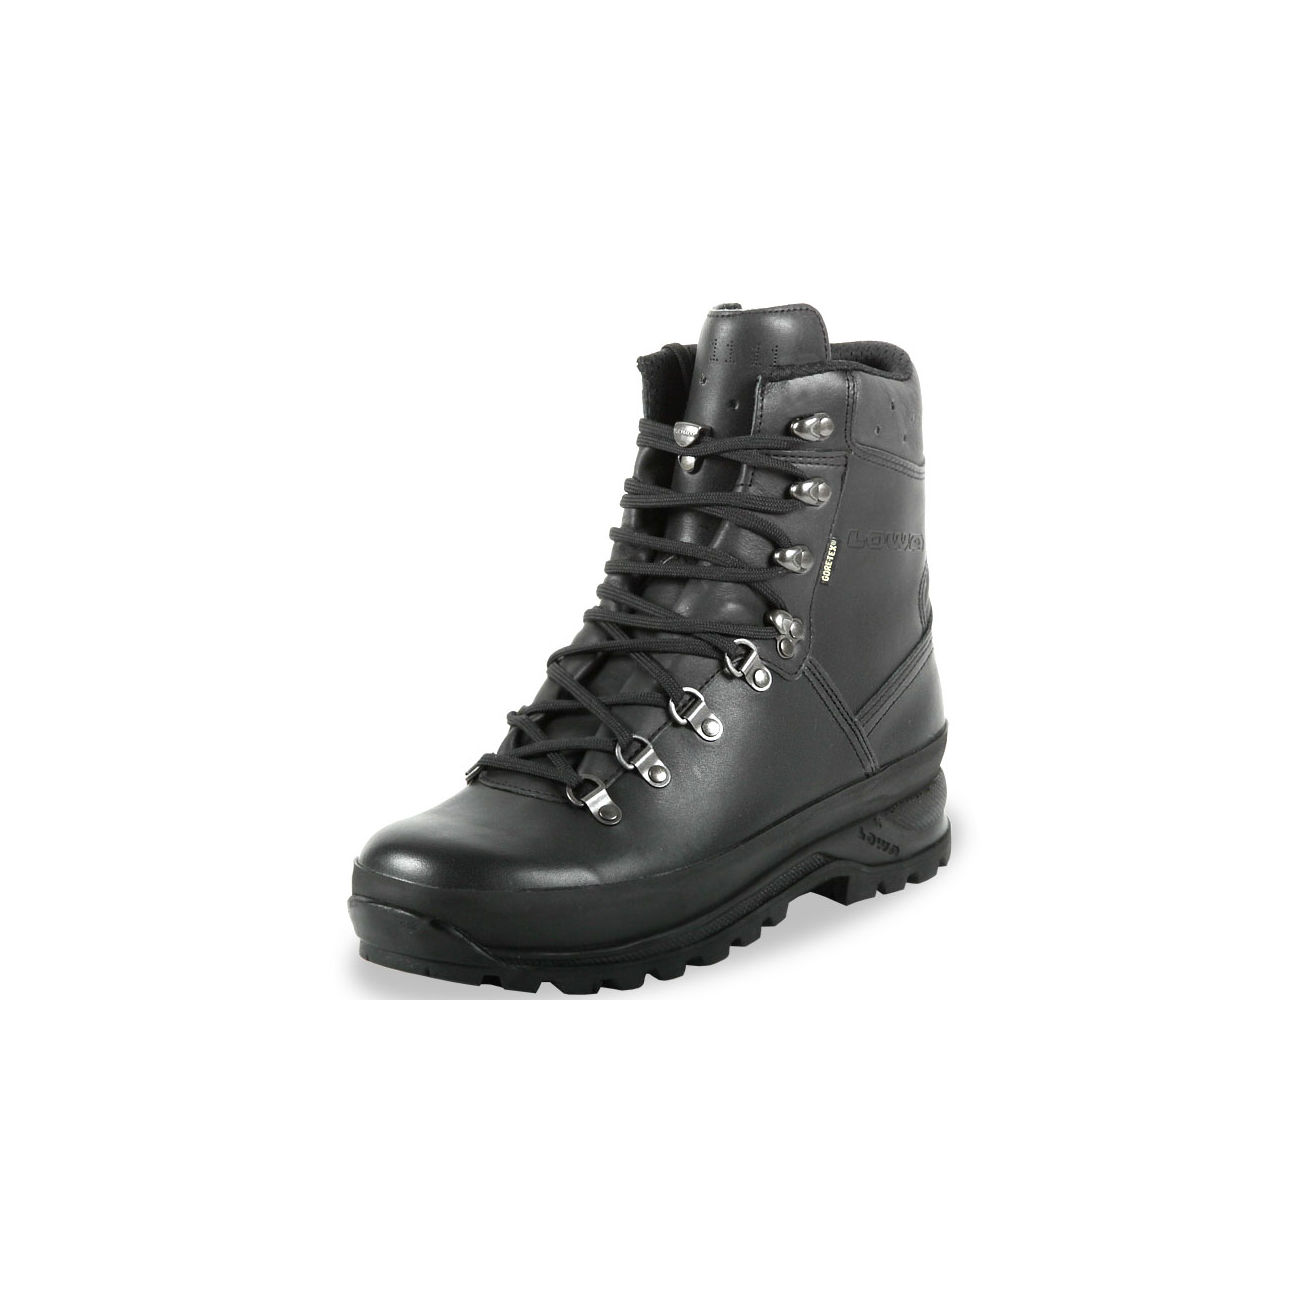 Lowa Mountain Boot GTX schwarz 0